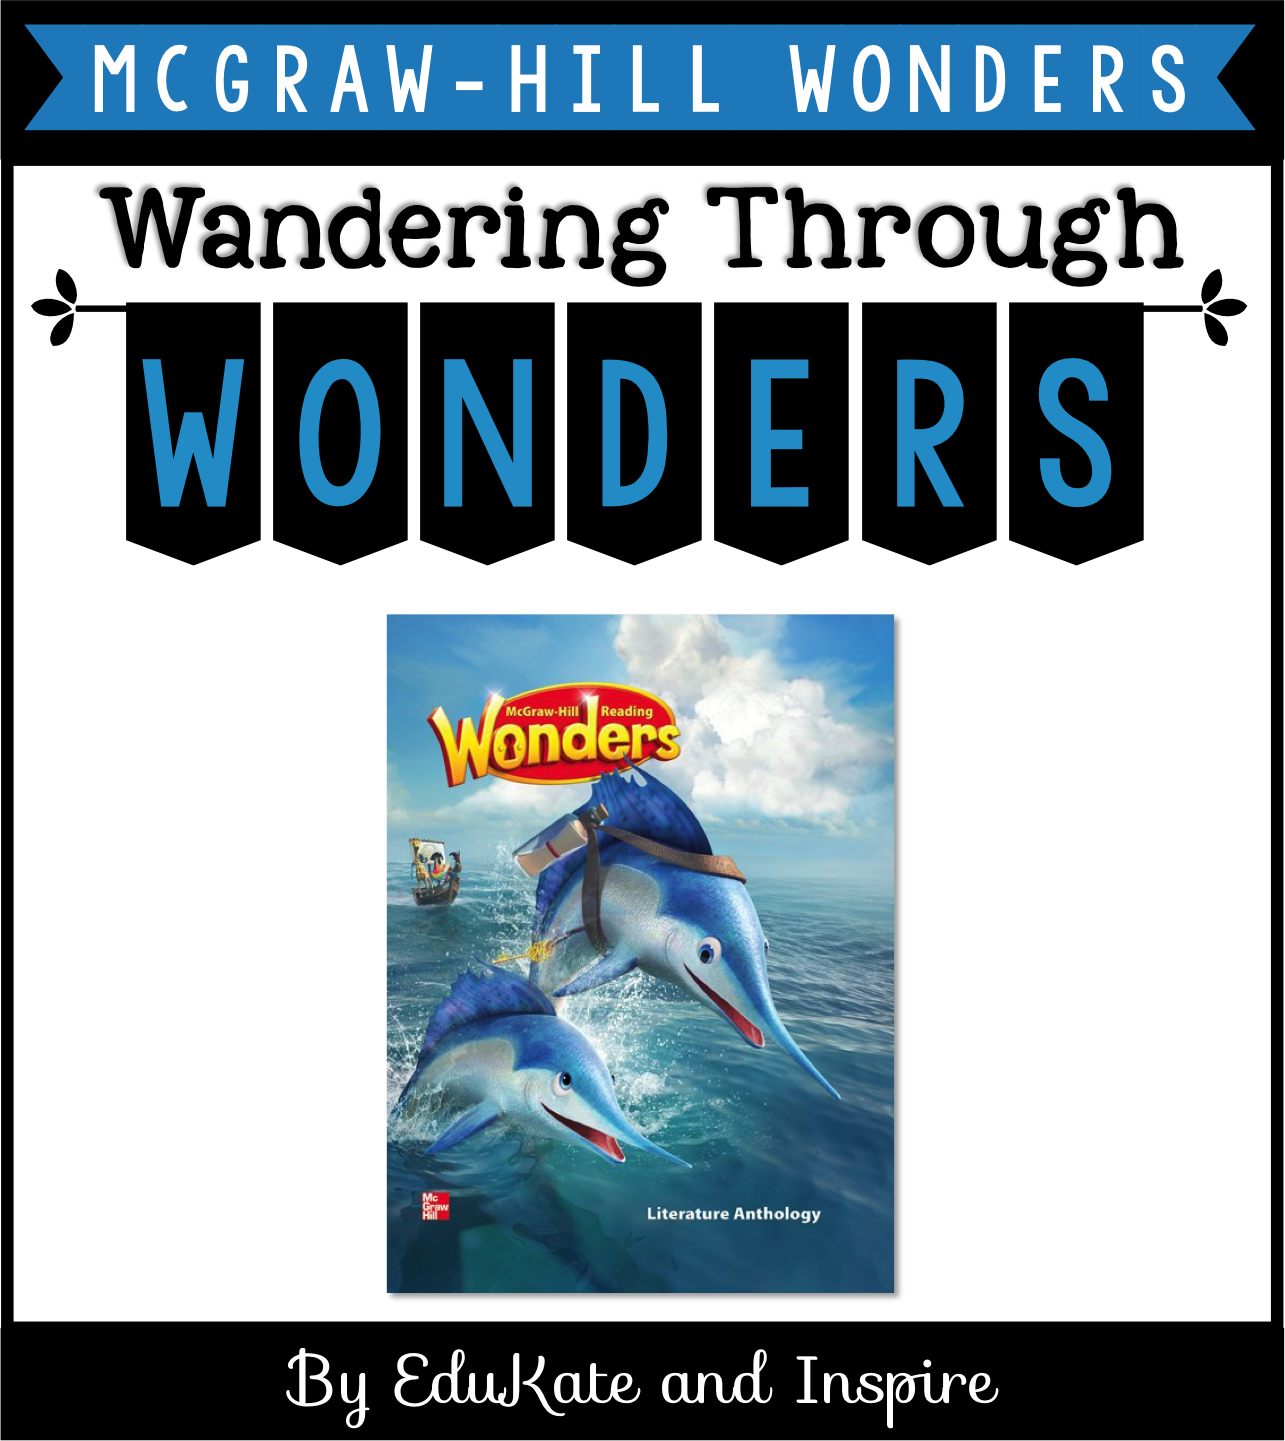 McGraw-Hill Wonders Second Grade